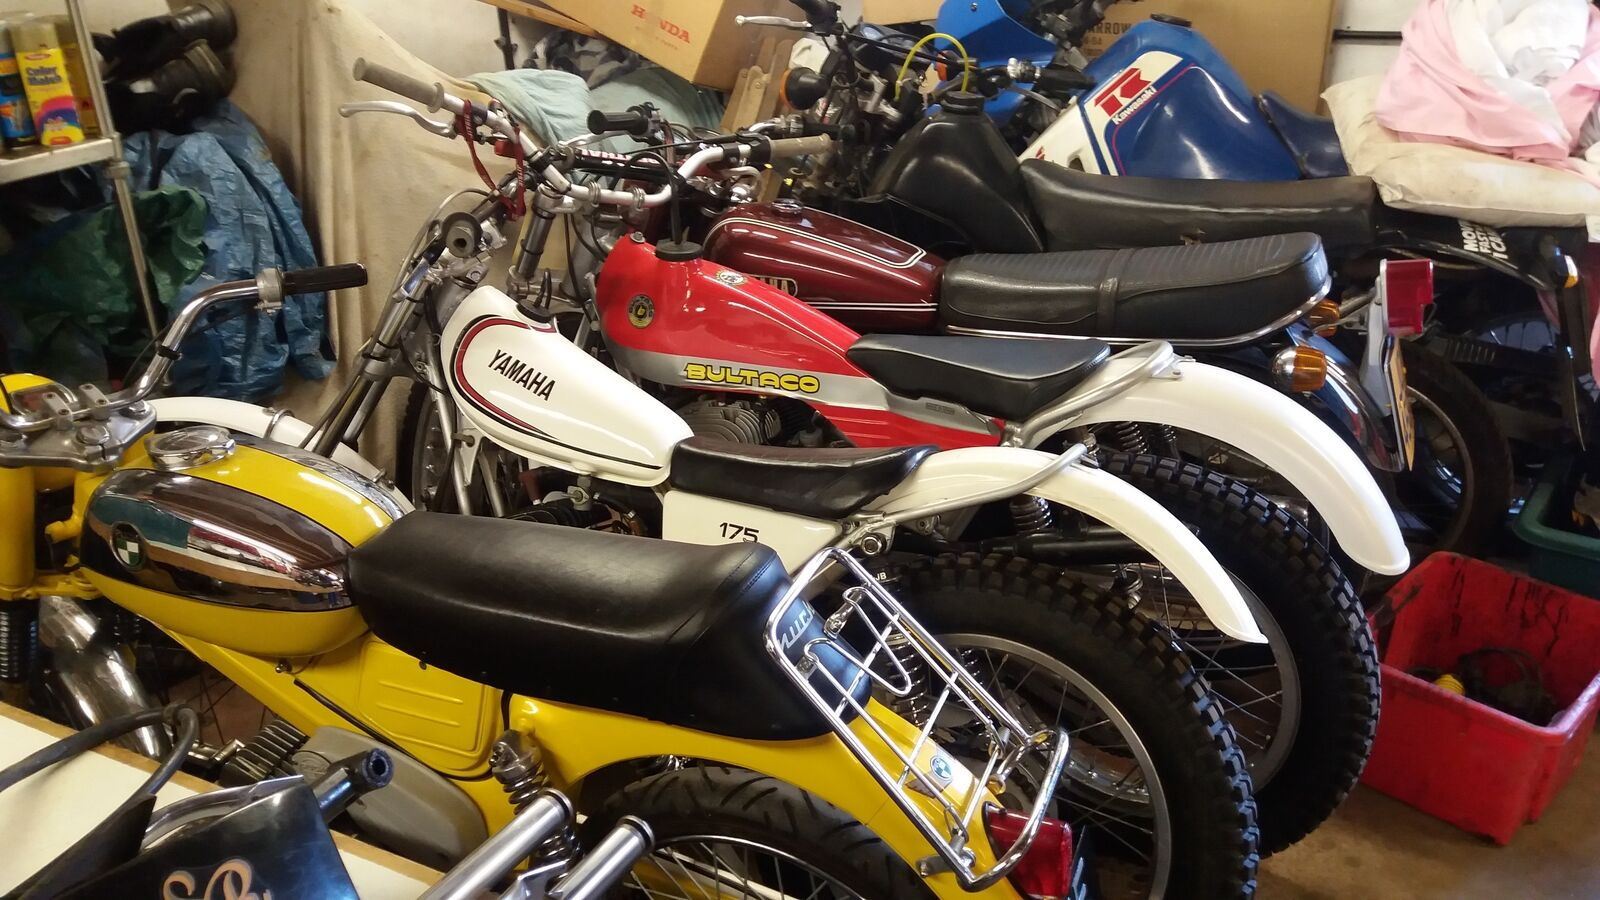 BRICKSTERS CLASSIC & MODERN SPARES